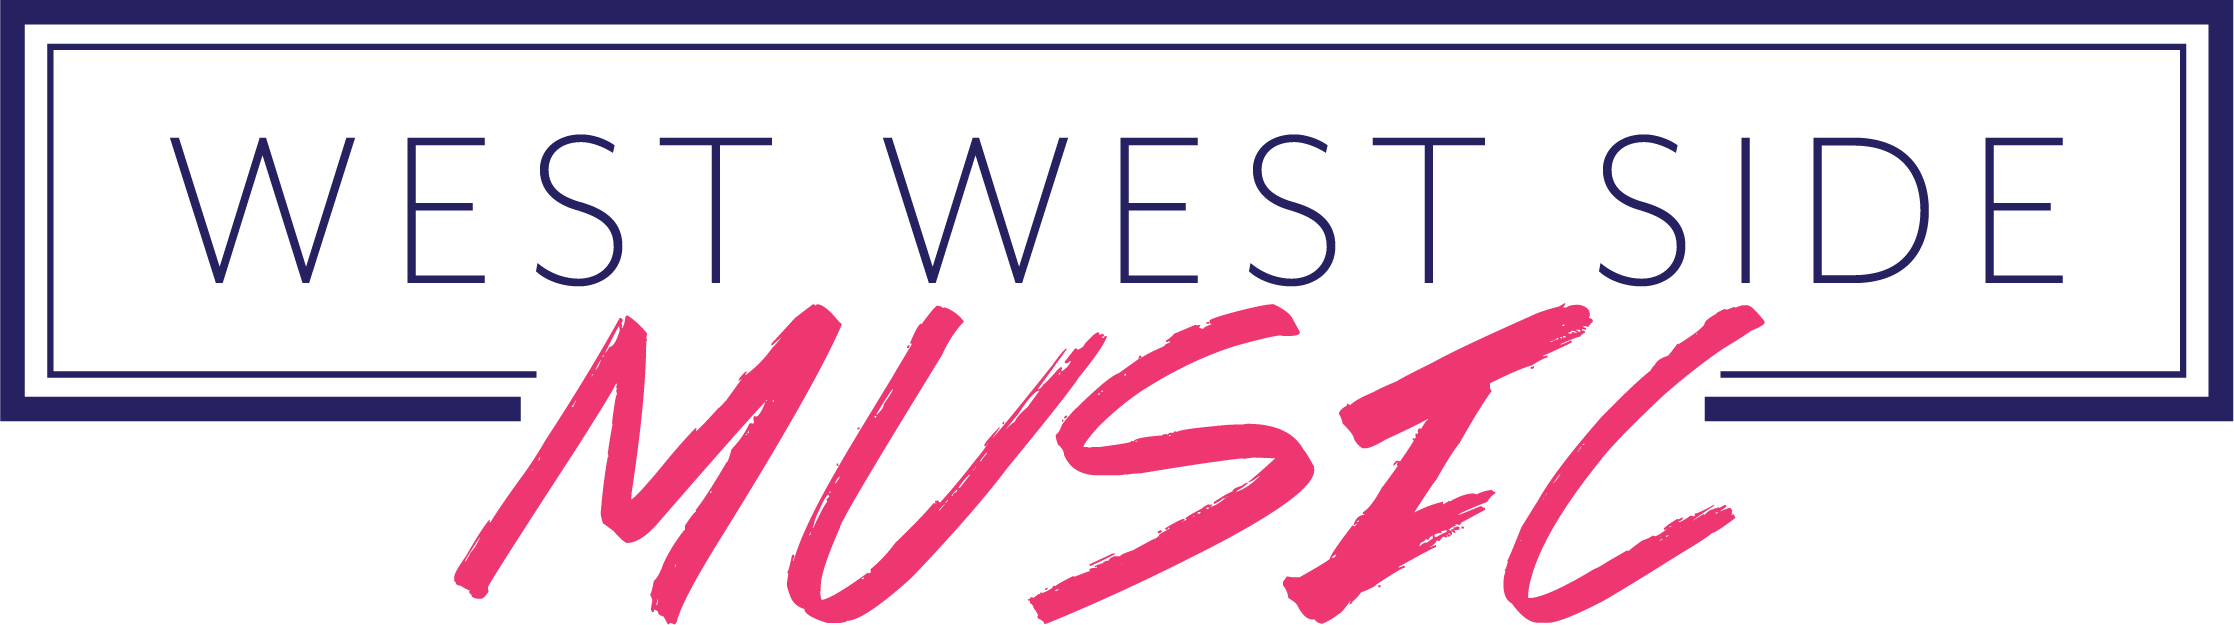 West West Side Music